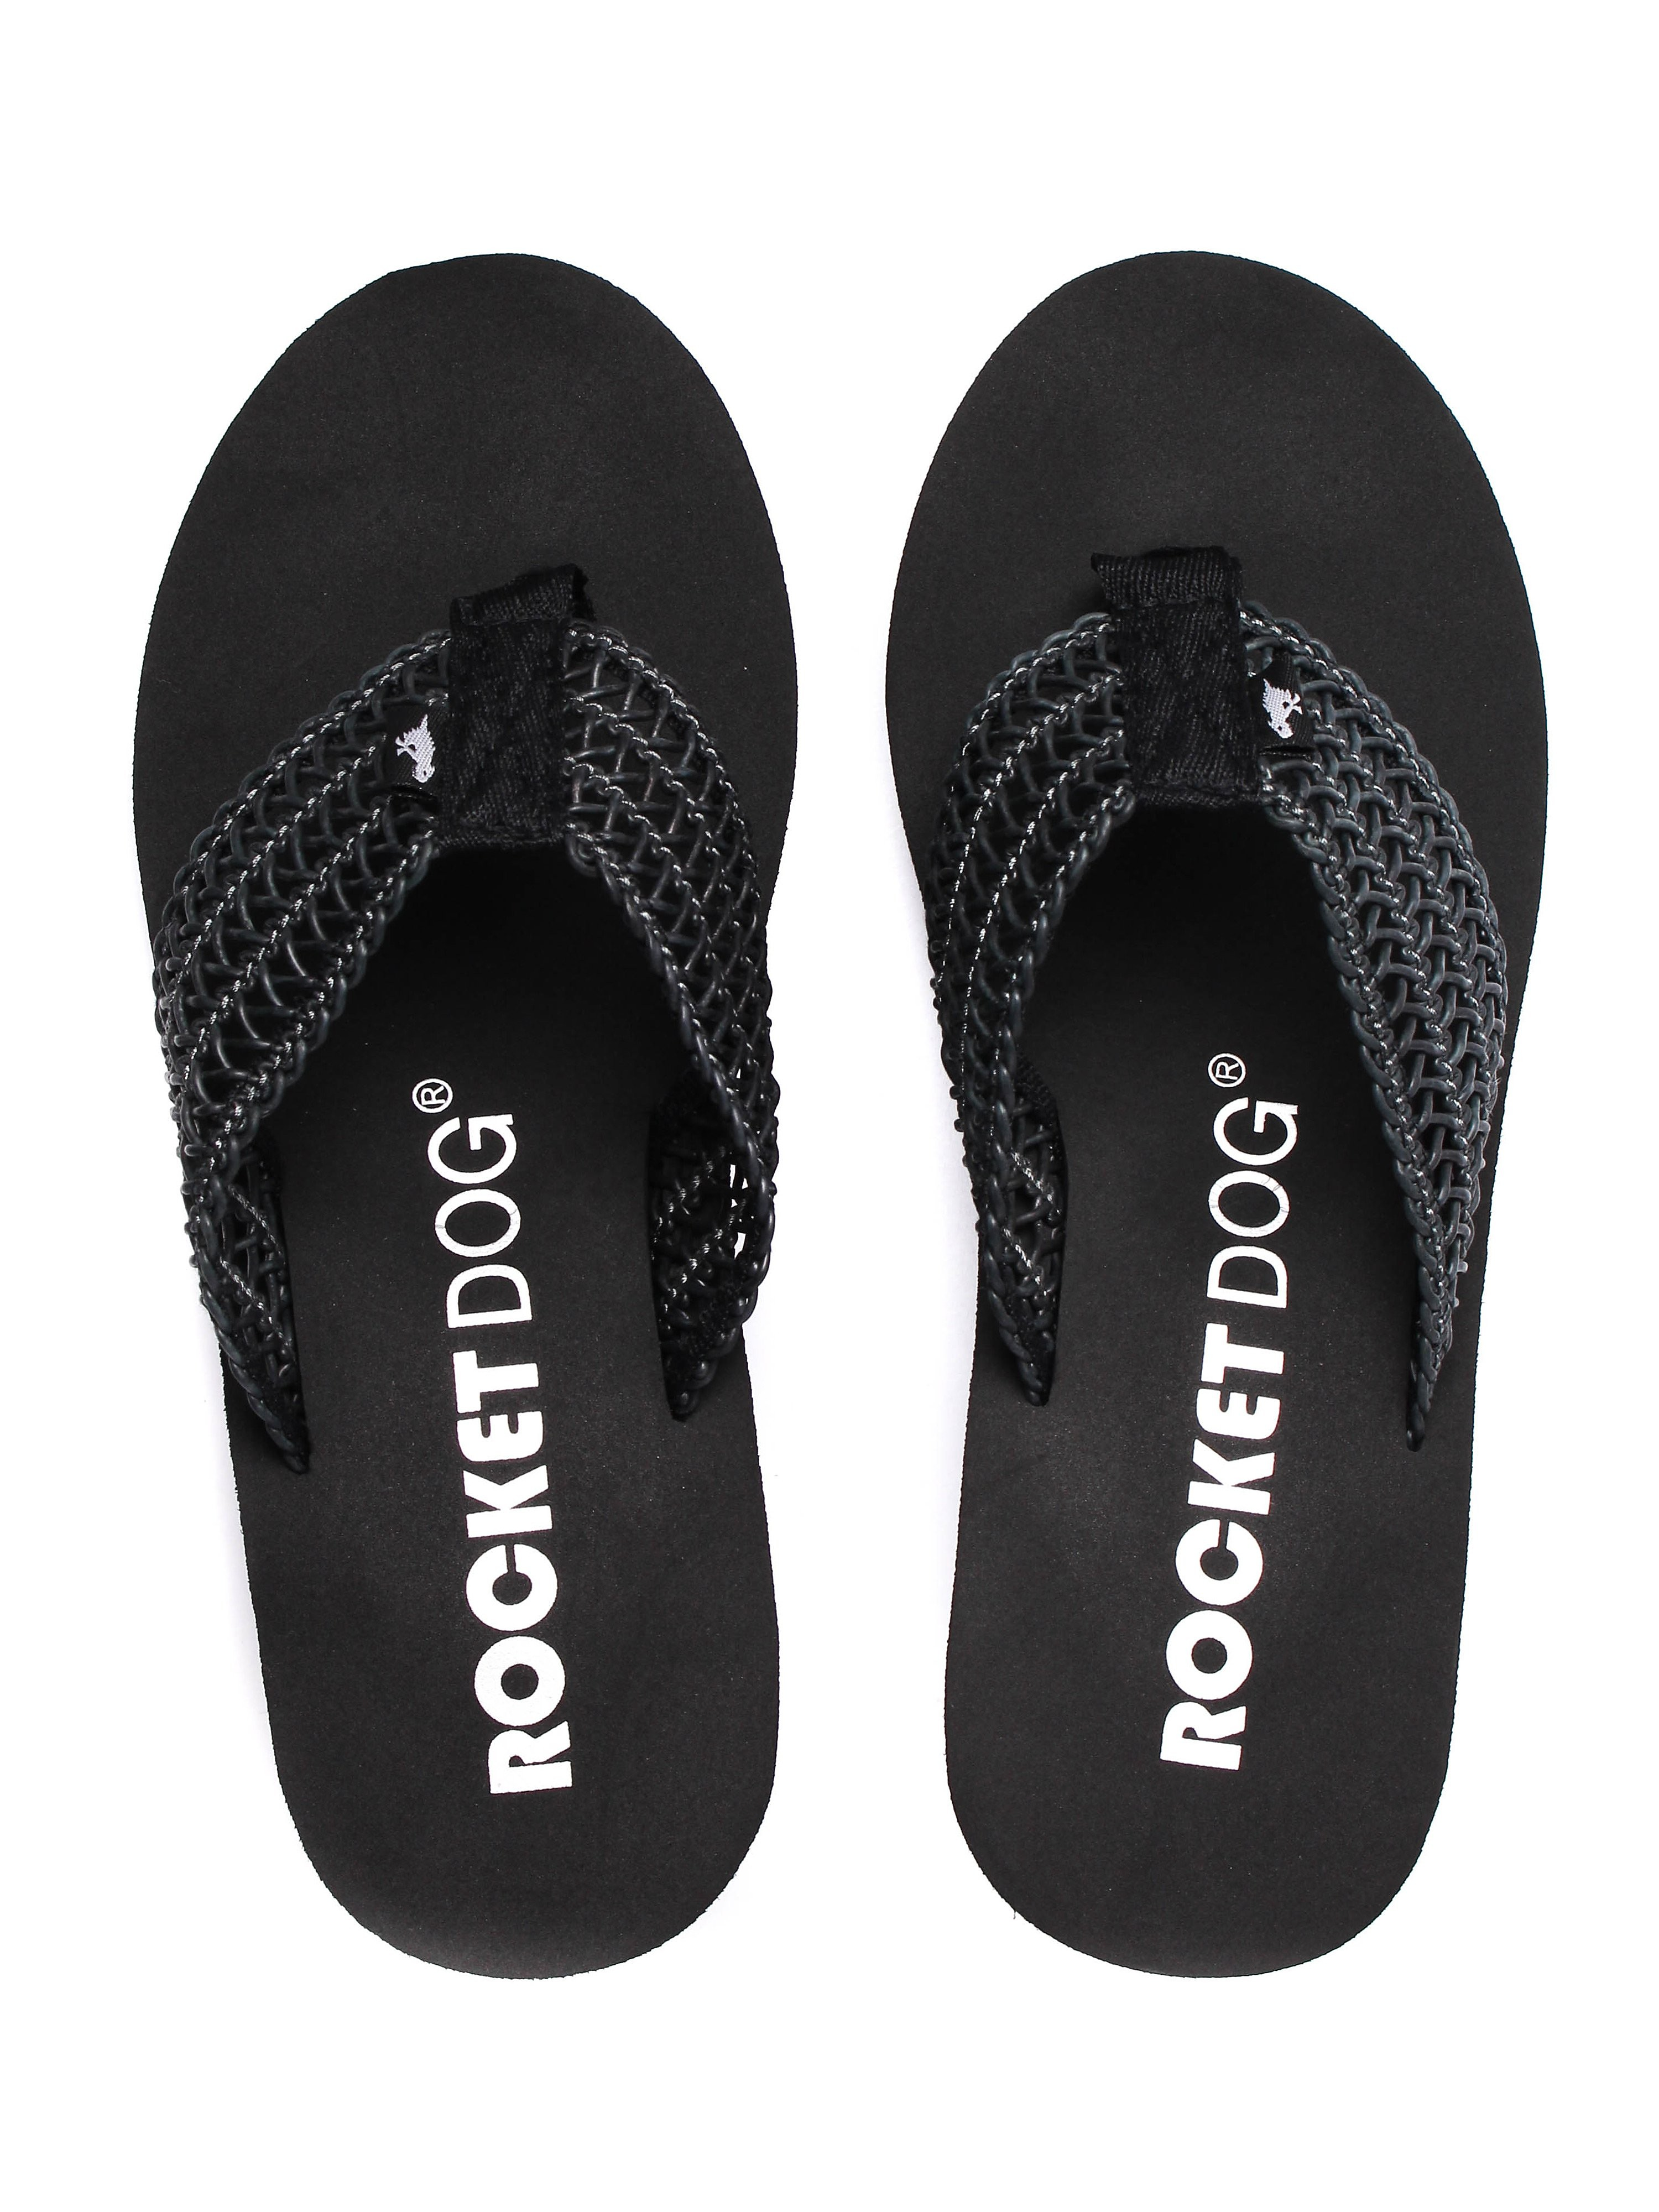 Rocket Dog Women's Divers Swella Wedge Flip Flops - Black